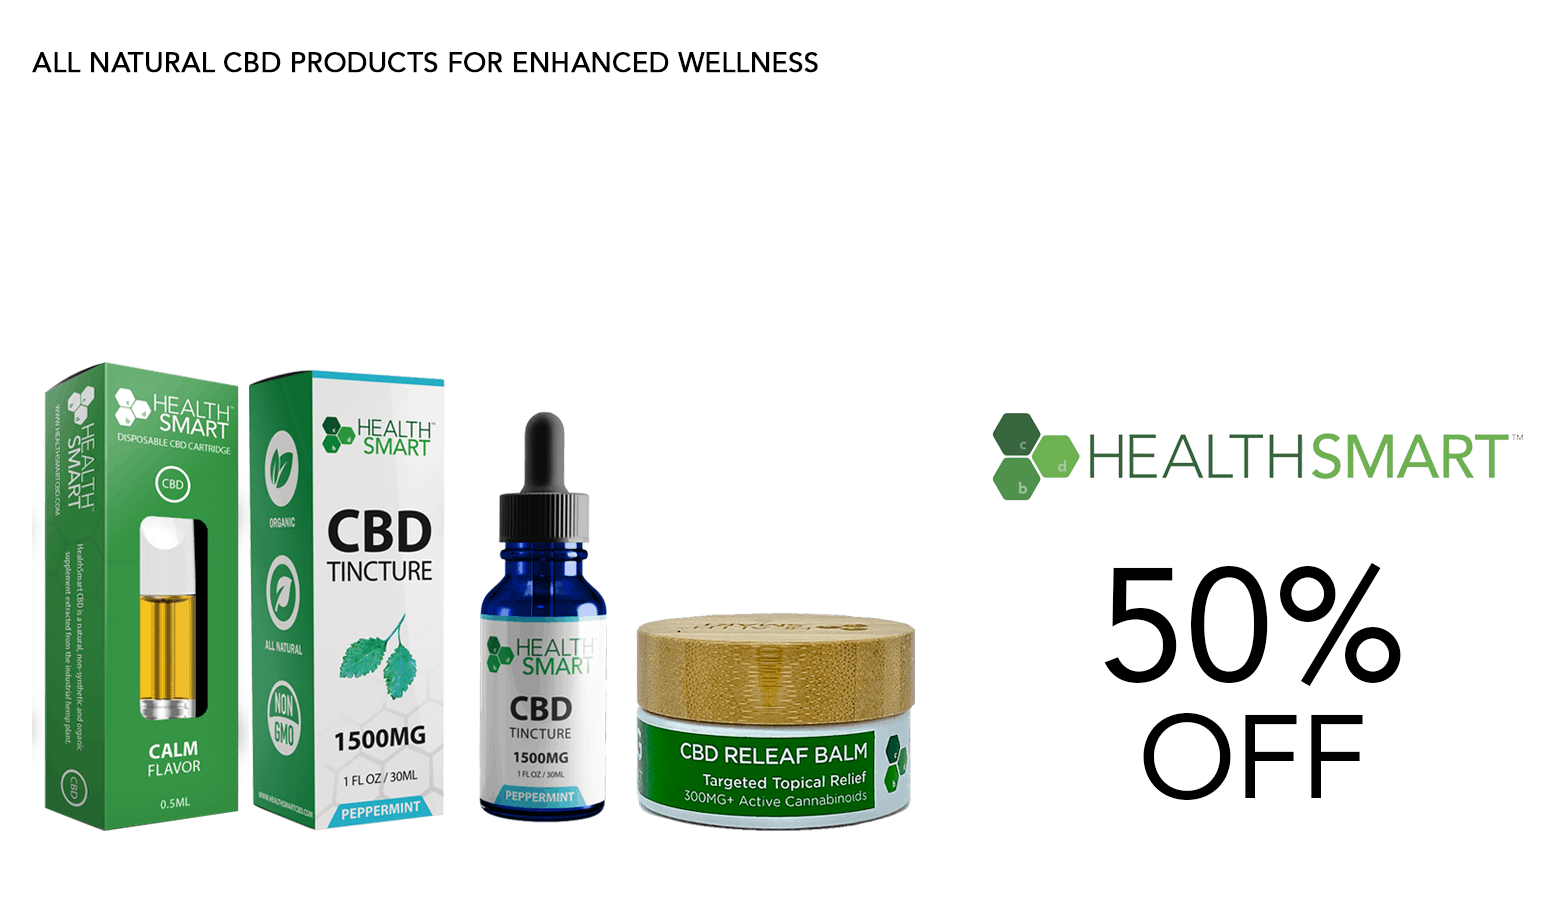 Health Smart CBD Coupon Code Offer Website